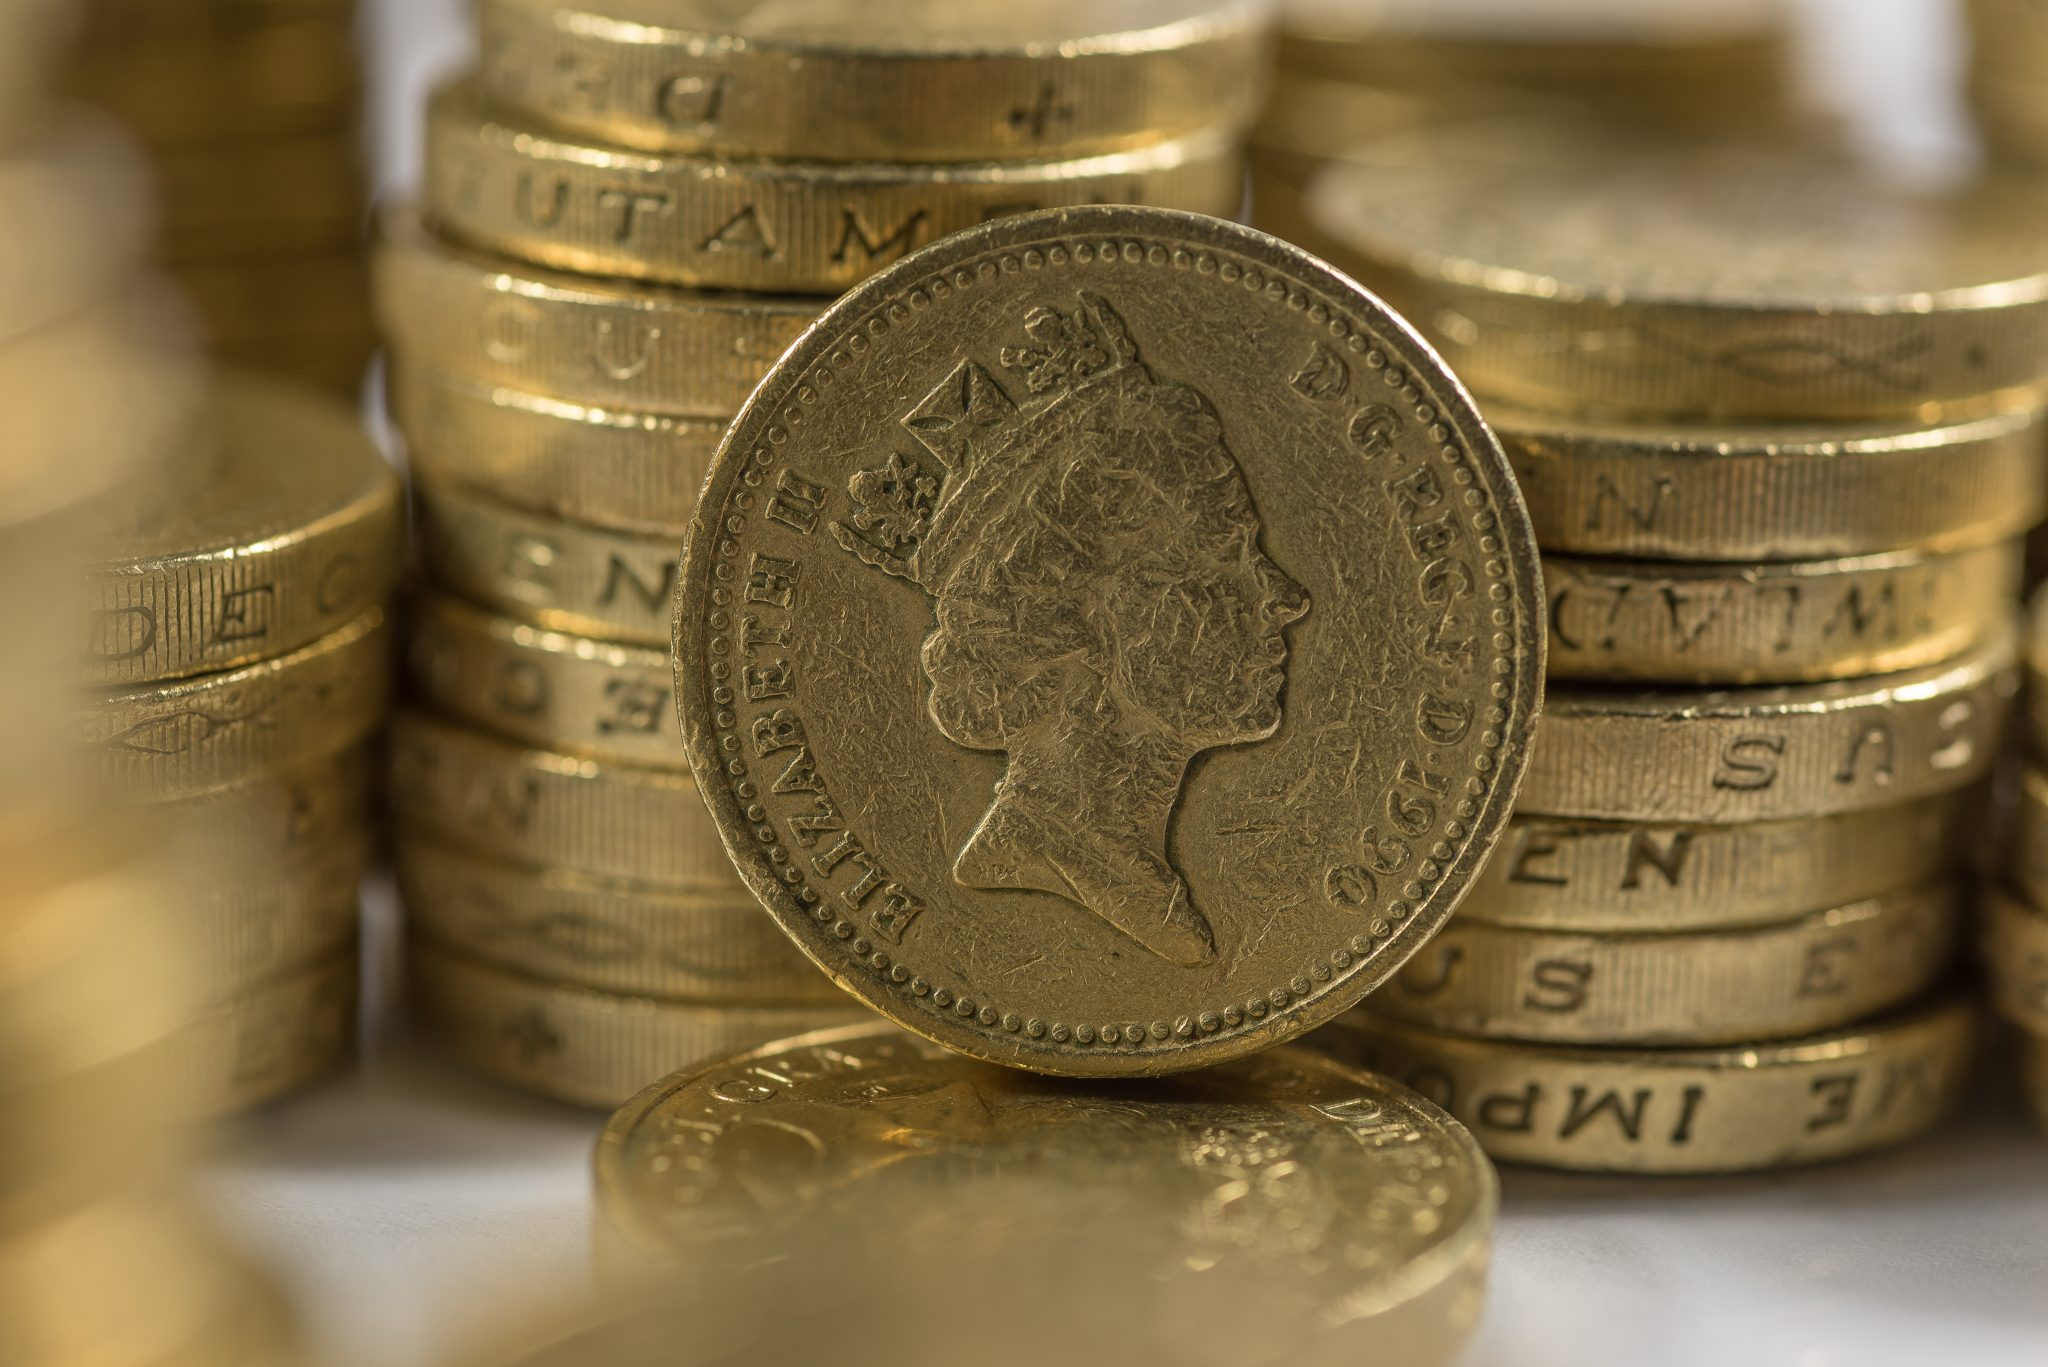 closeup shot of a pile of pound coins